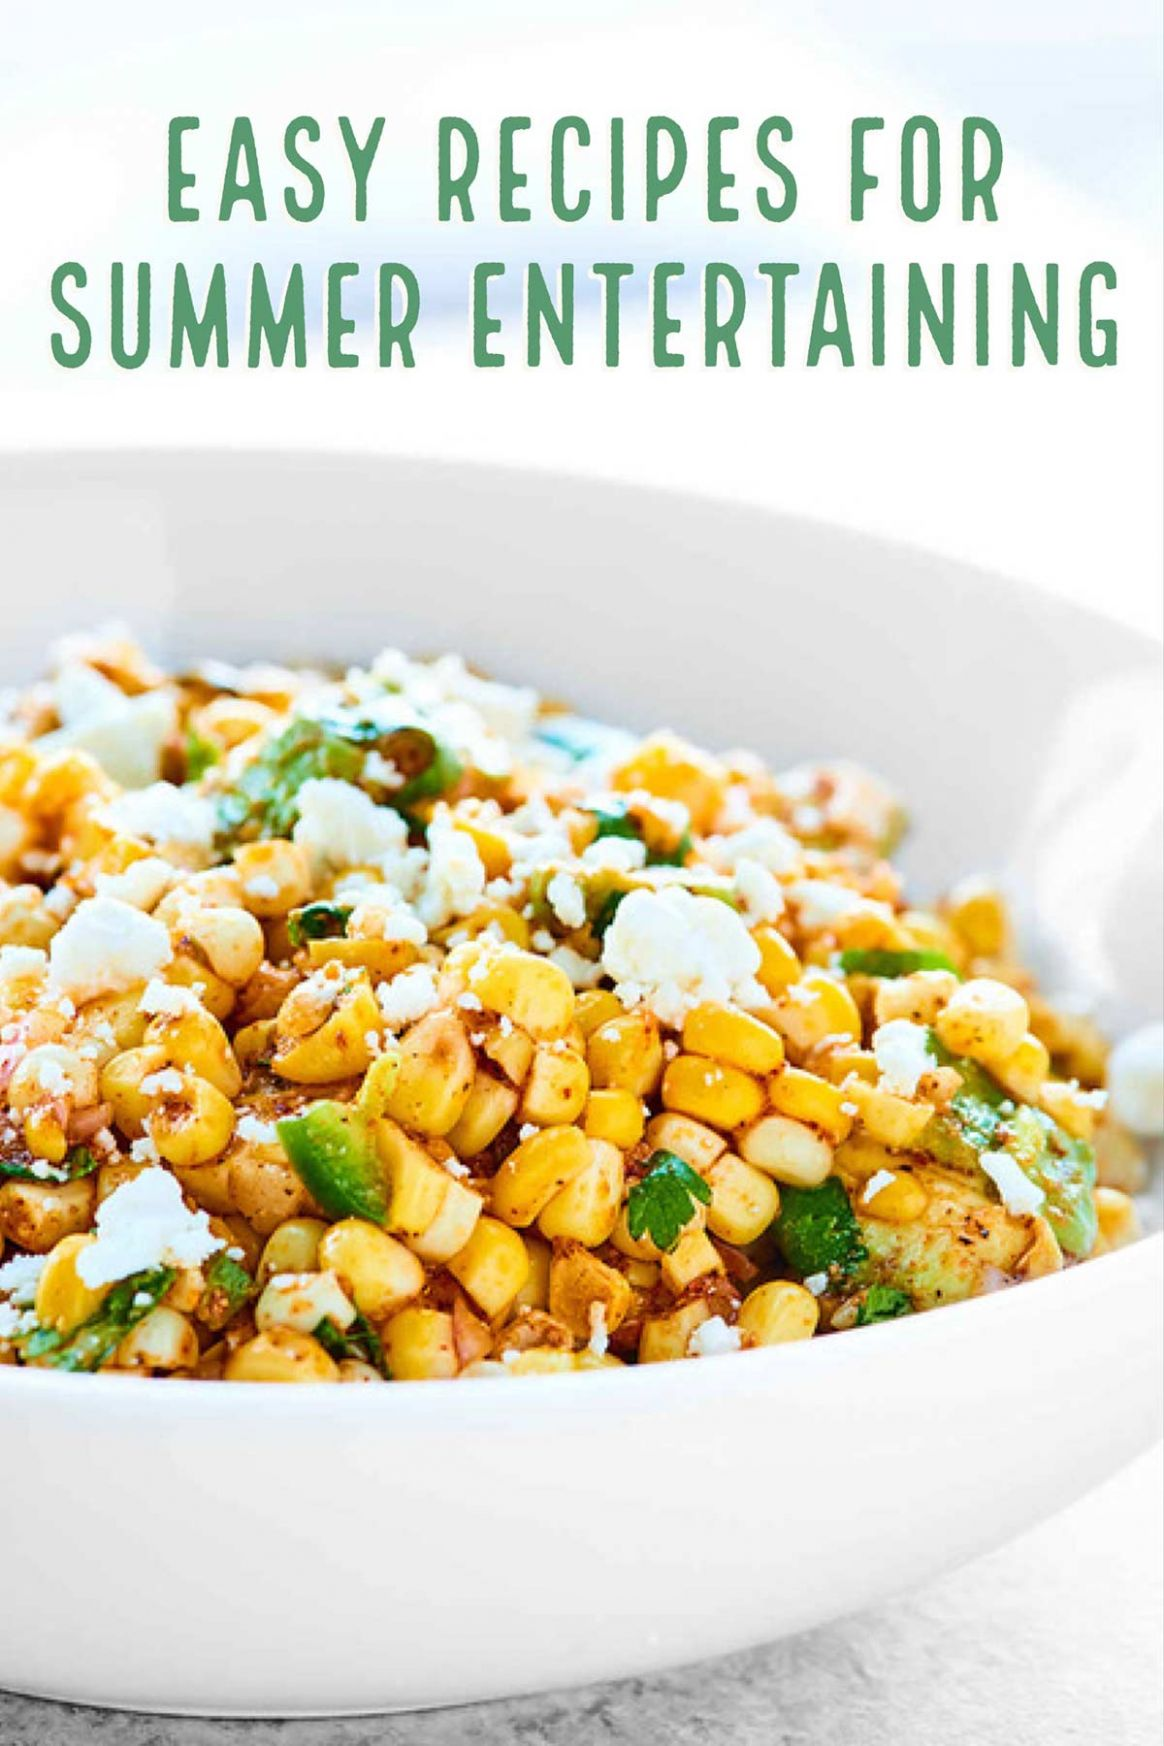 Easy Recipes for Summer Entertaining - Show Me the Yummy - Recipes For Summer